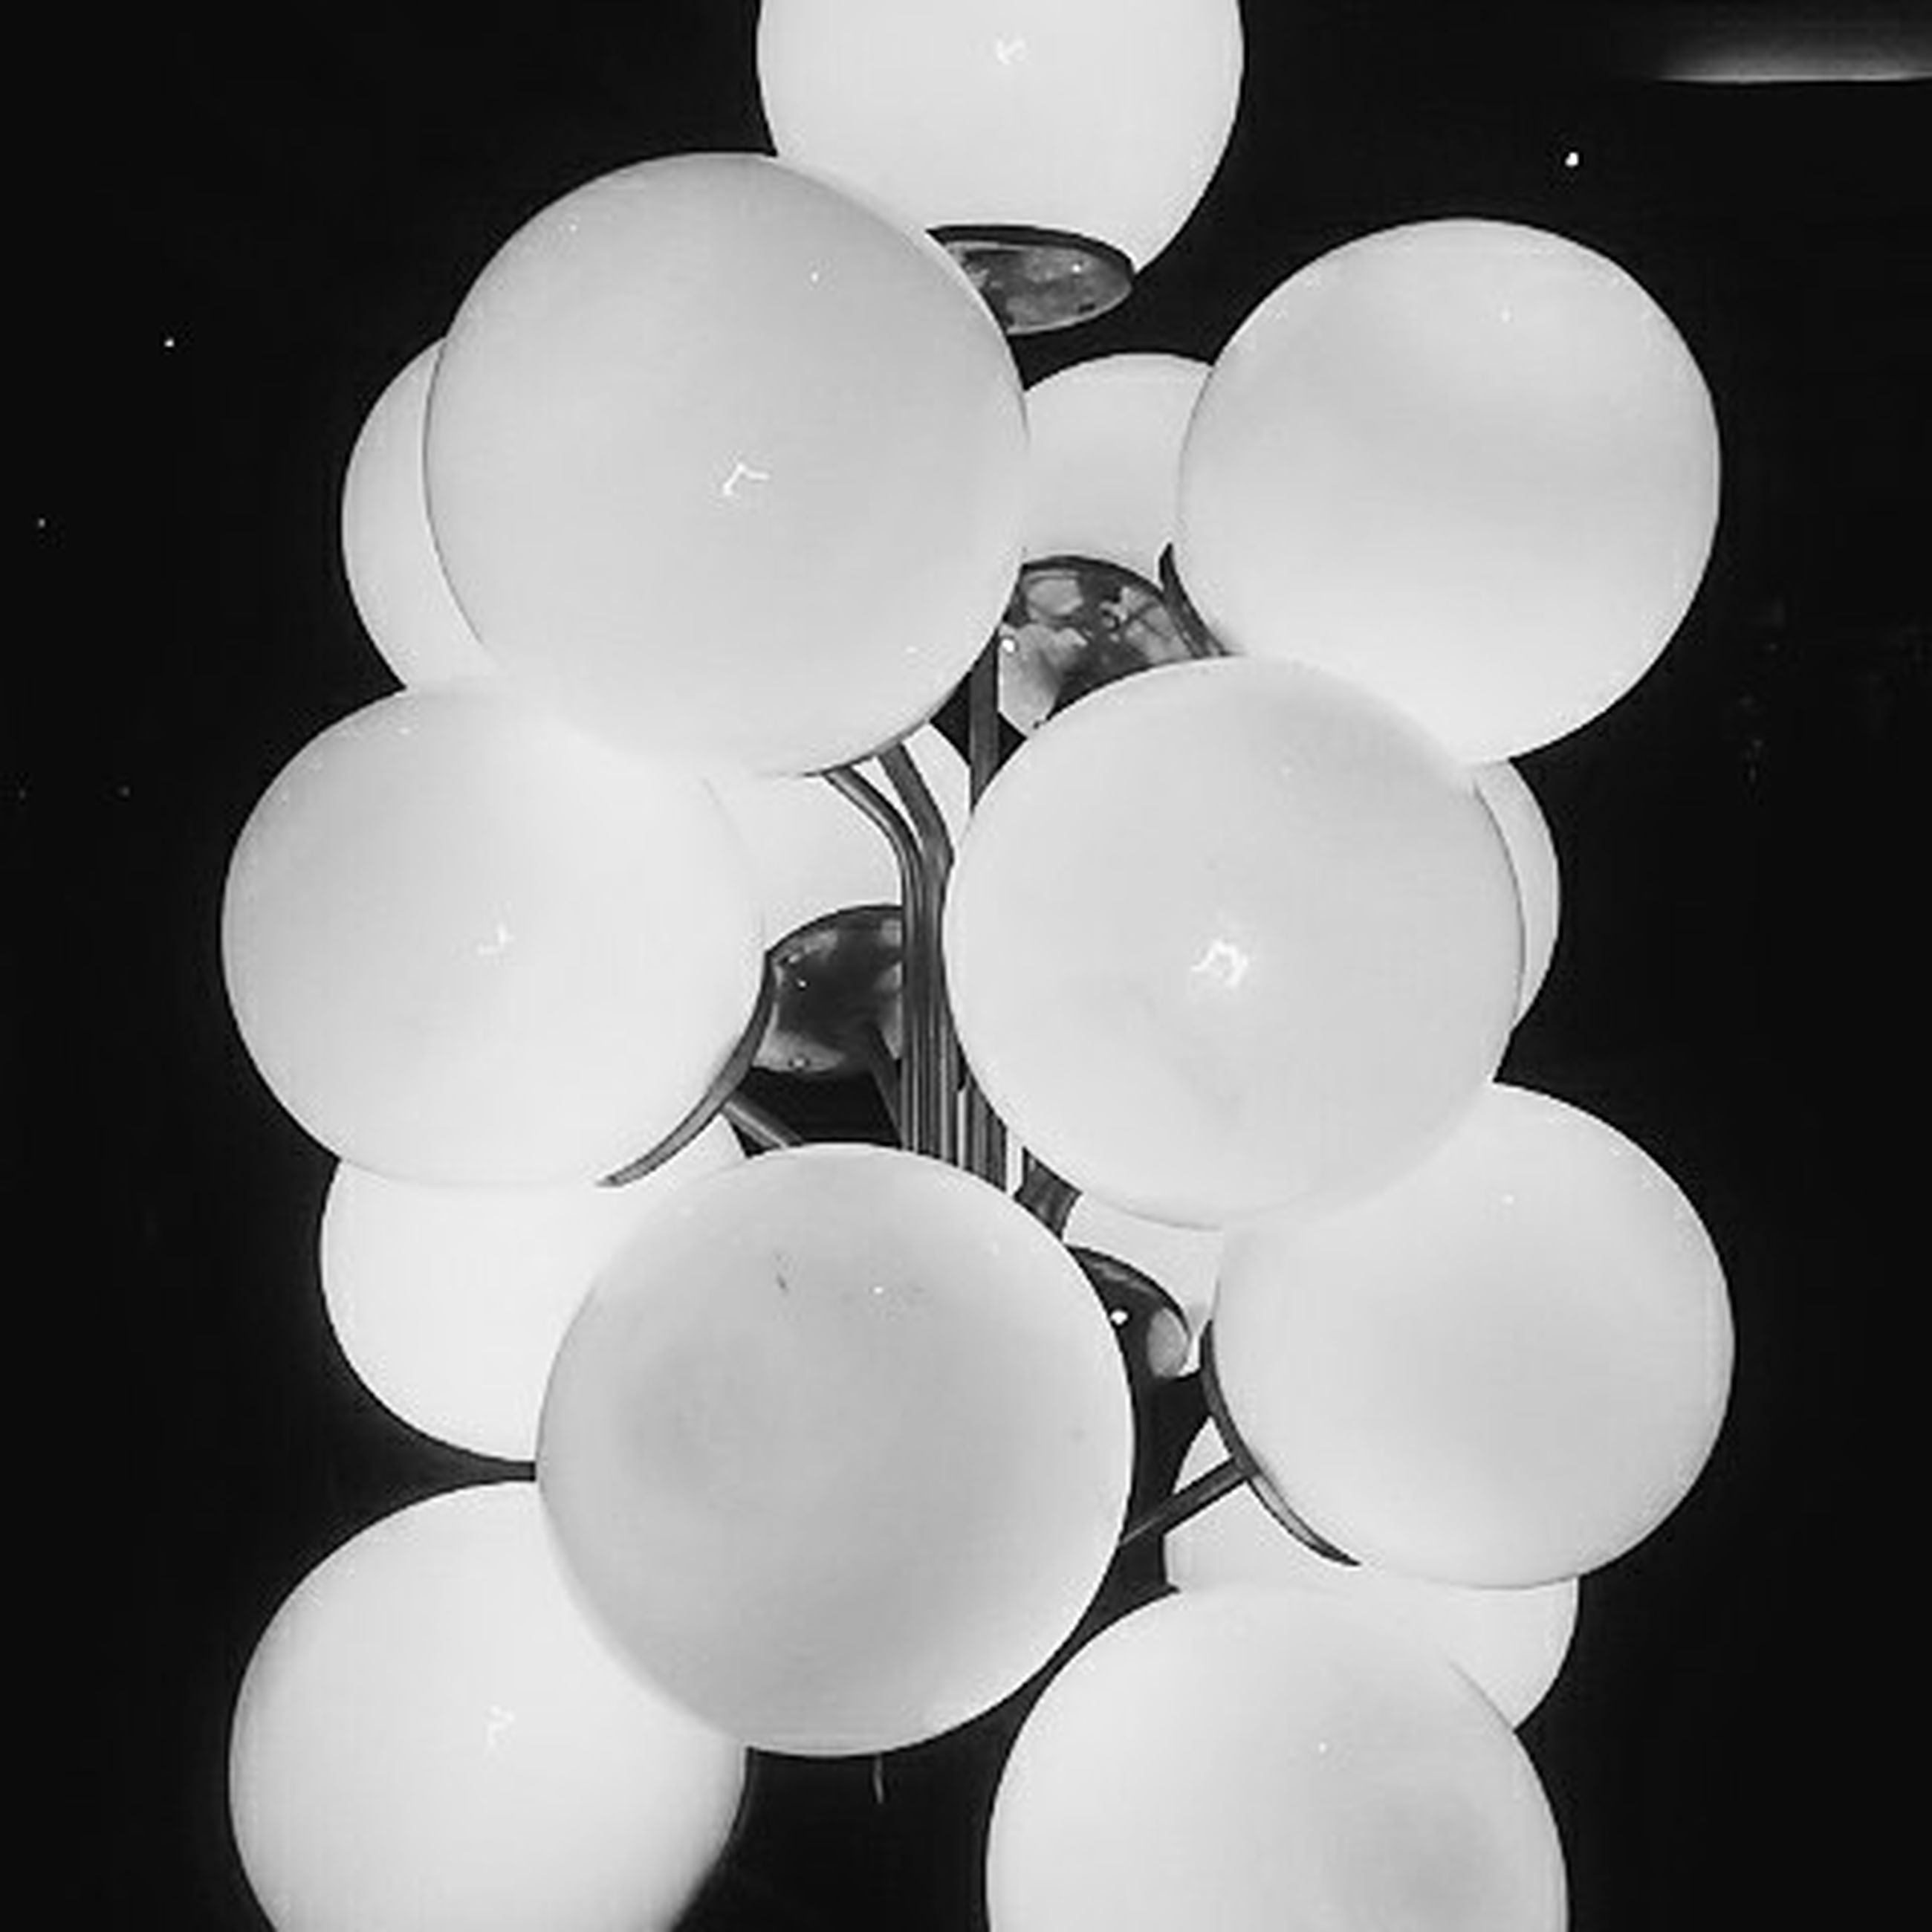 indoors, sphere, circle, night, low angle view, lighting equipment, white color, illuminated, moon, close-up, ceiling, large group of objects, electricity, hanging, no people, shape, geometric shape, dark, electric lamp, black background